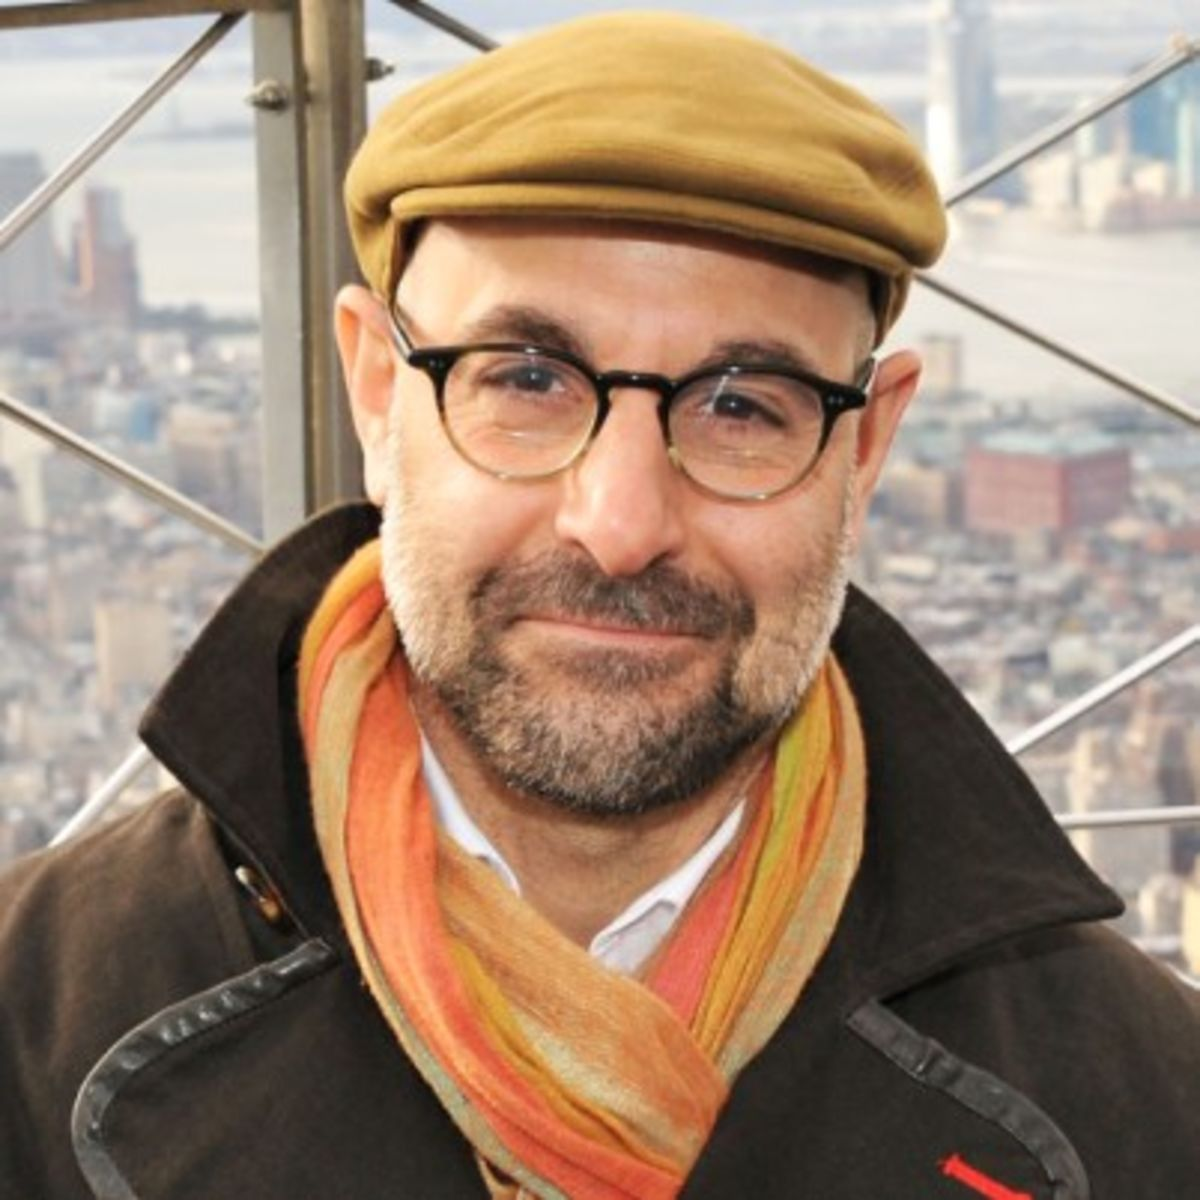 Stanley Tucci is an actor, perhaps best known for his performances in Julie & Julia and The Lovely Bones. Read much more on Biography.com.